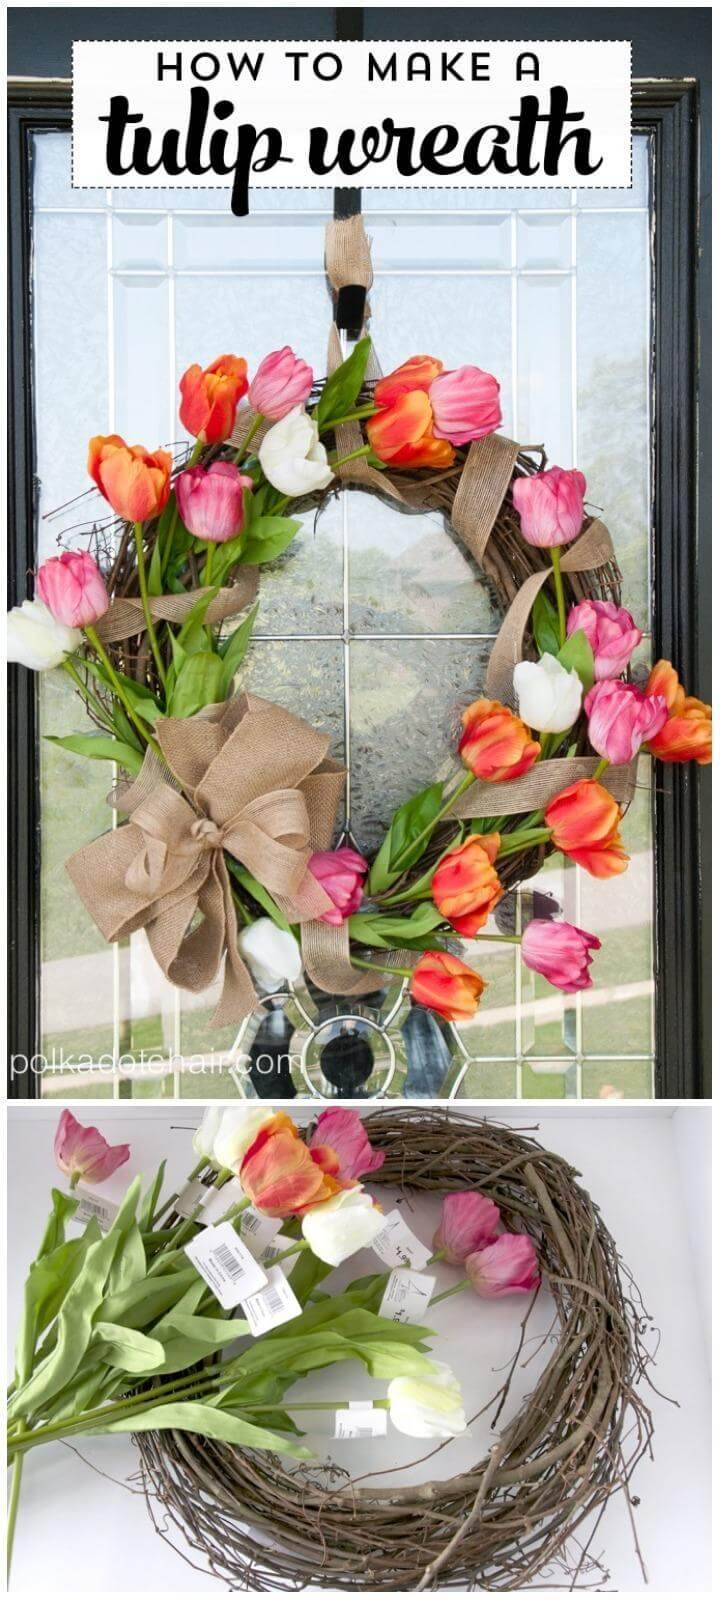 DIY Adorable Tulip Wreath Tutorial